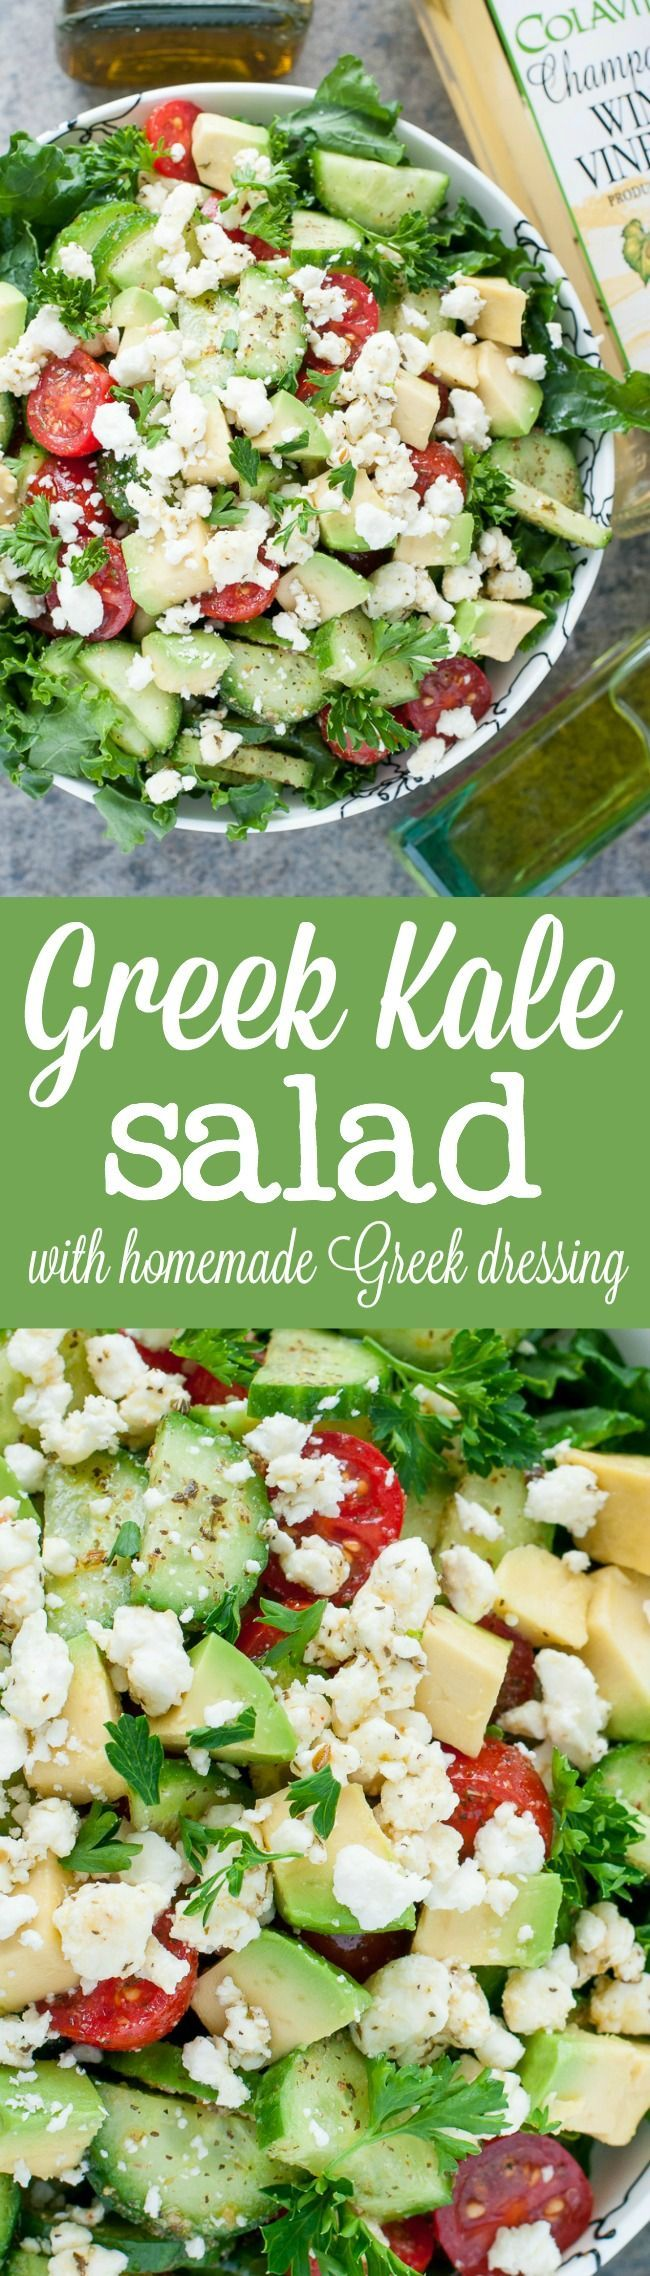 Chopped Greek Kale Salad with a healthy homemade Greek dressing you'll want to put on everything!